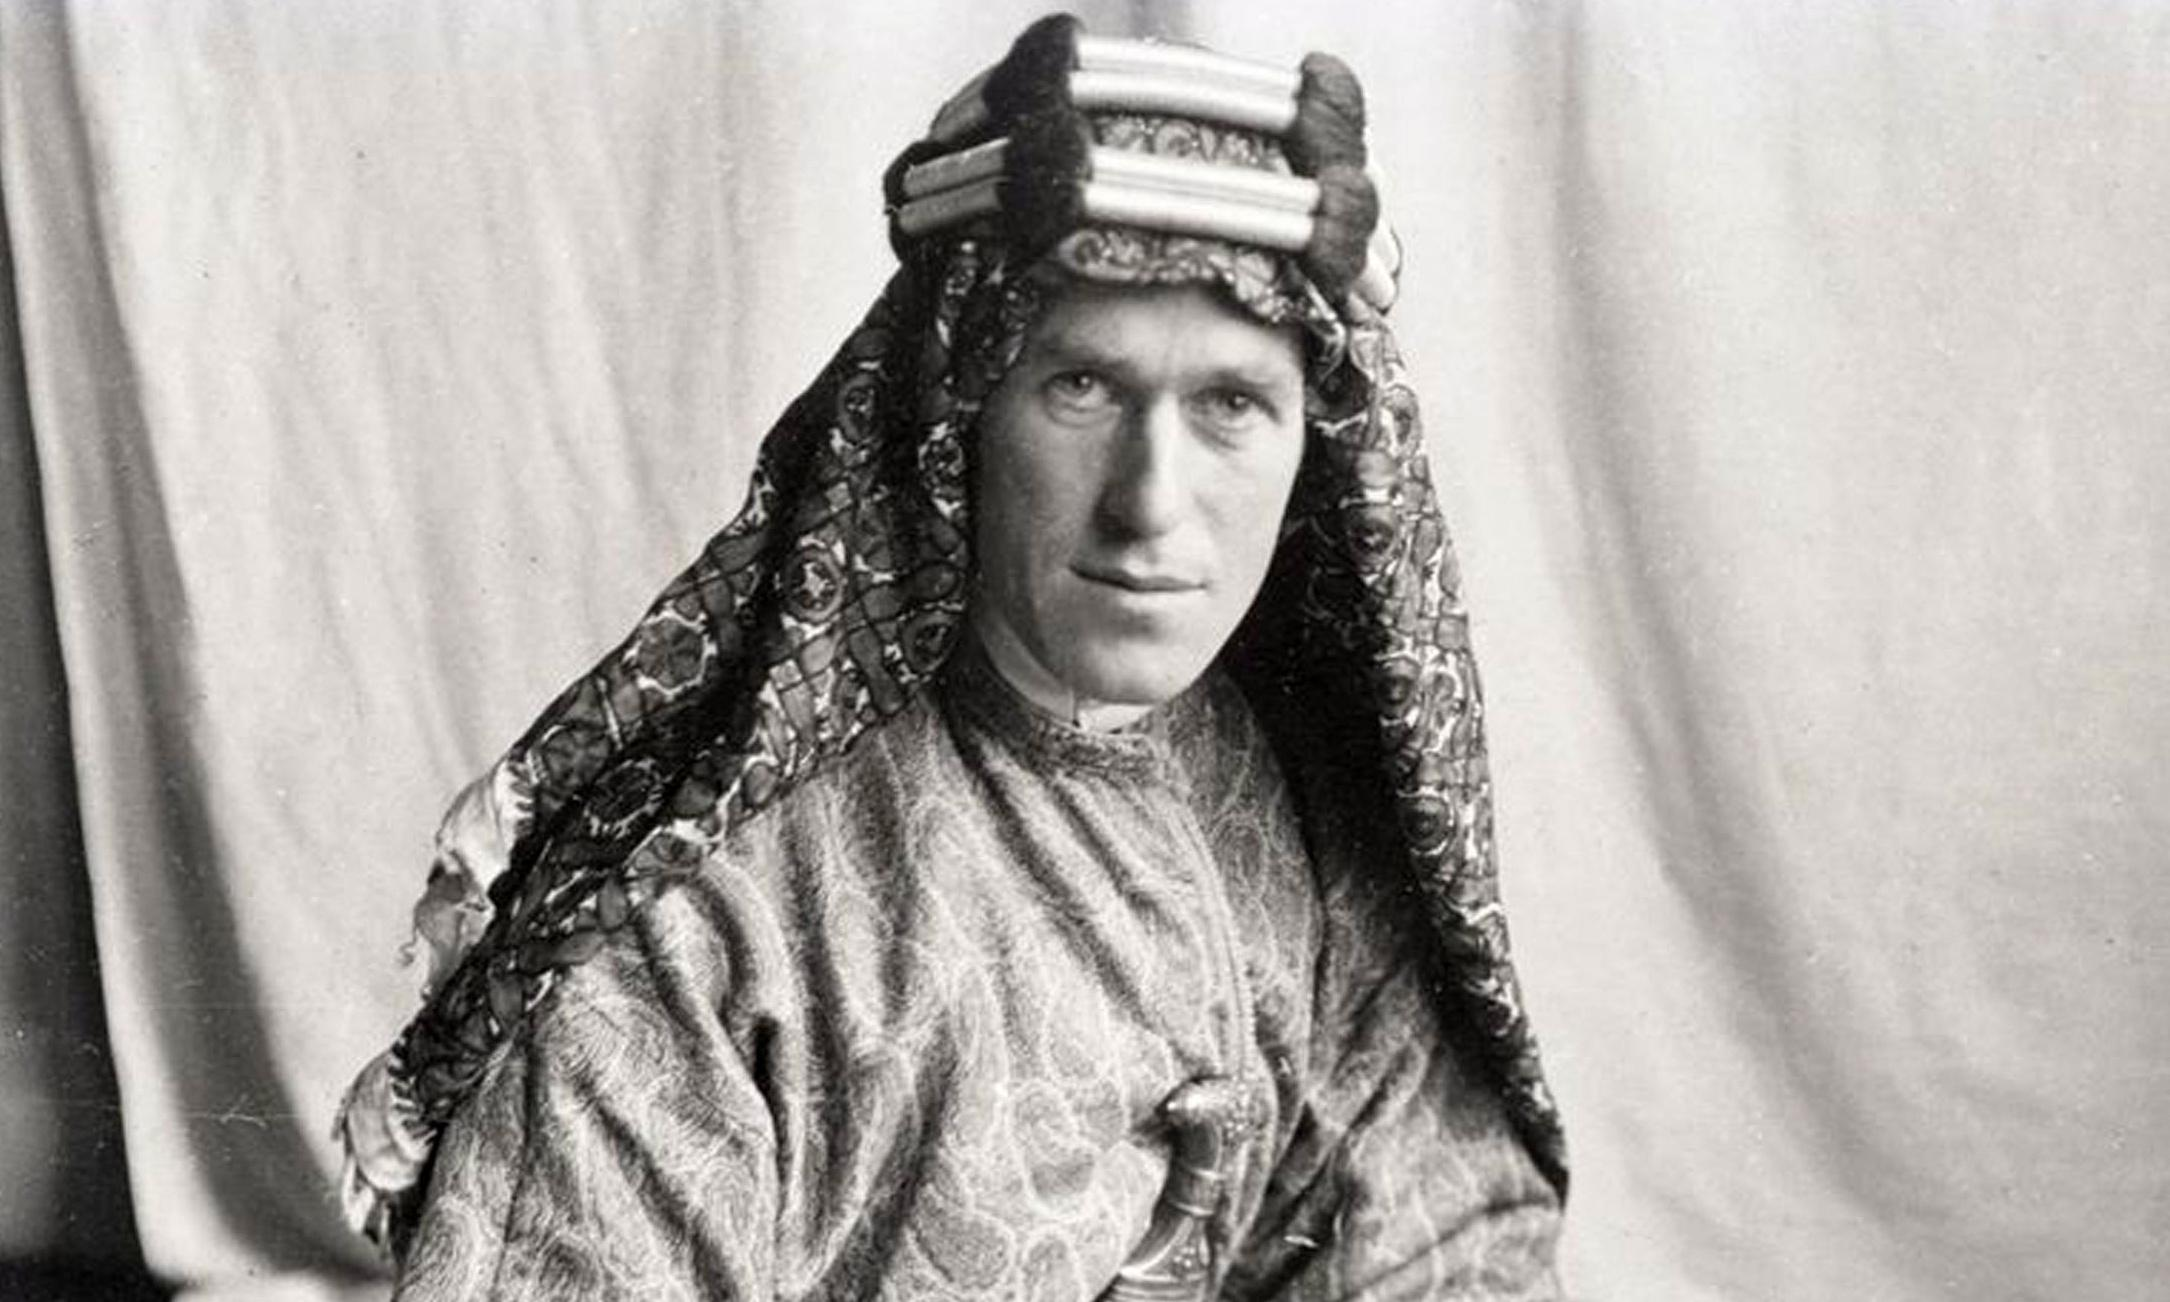 The death of Lawrence of Arabia – archive, 21 May 1935